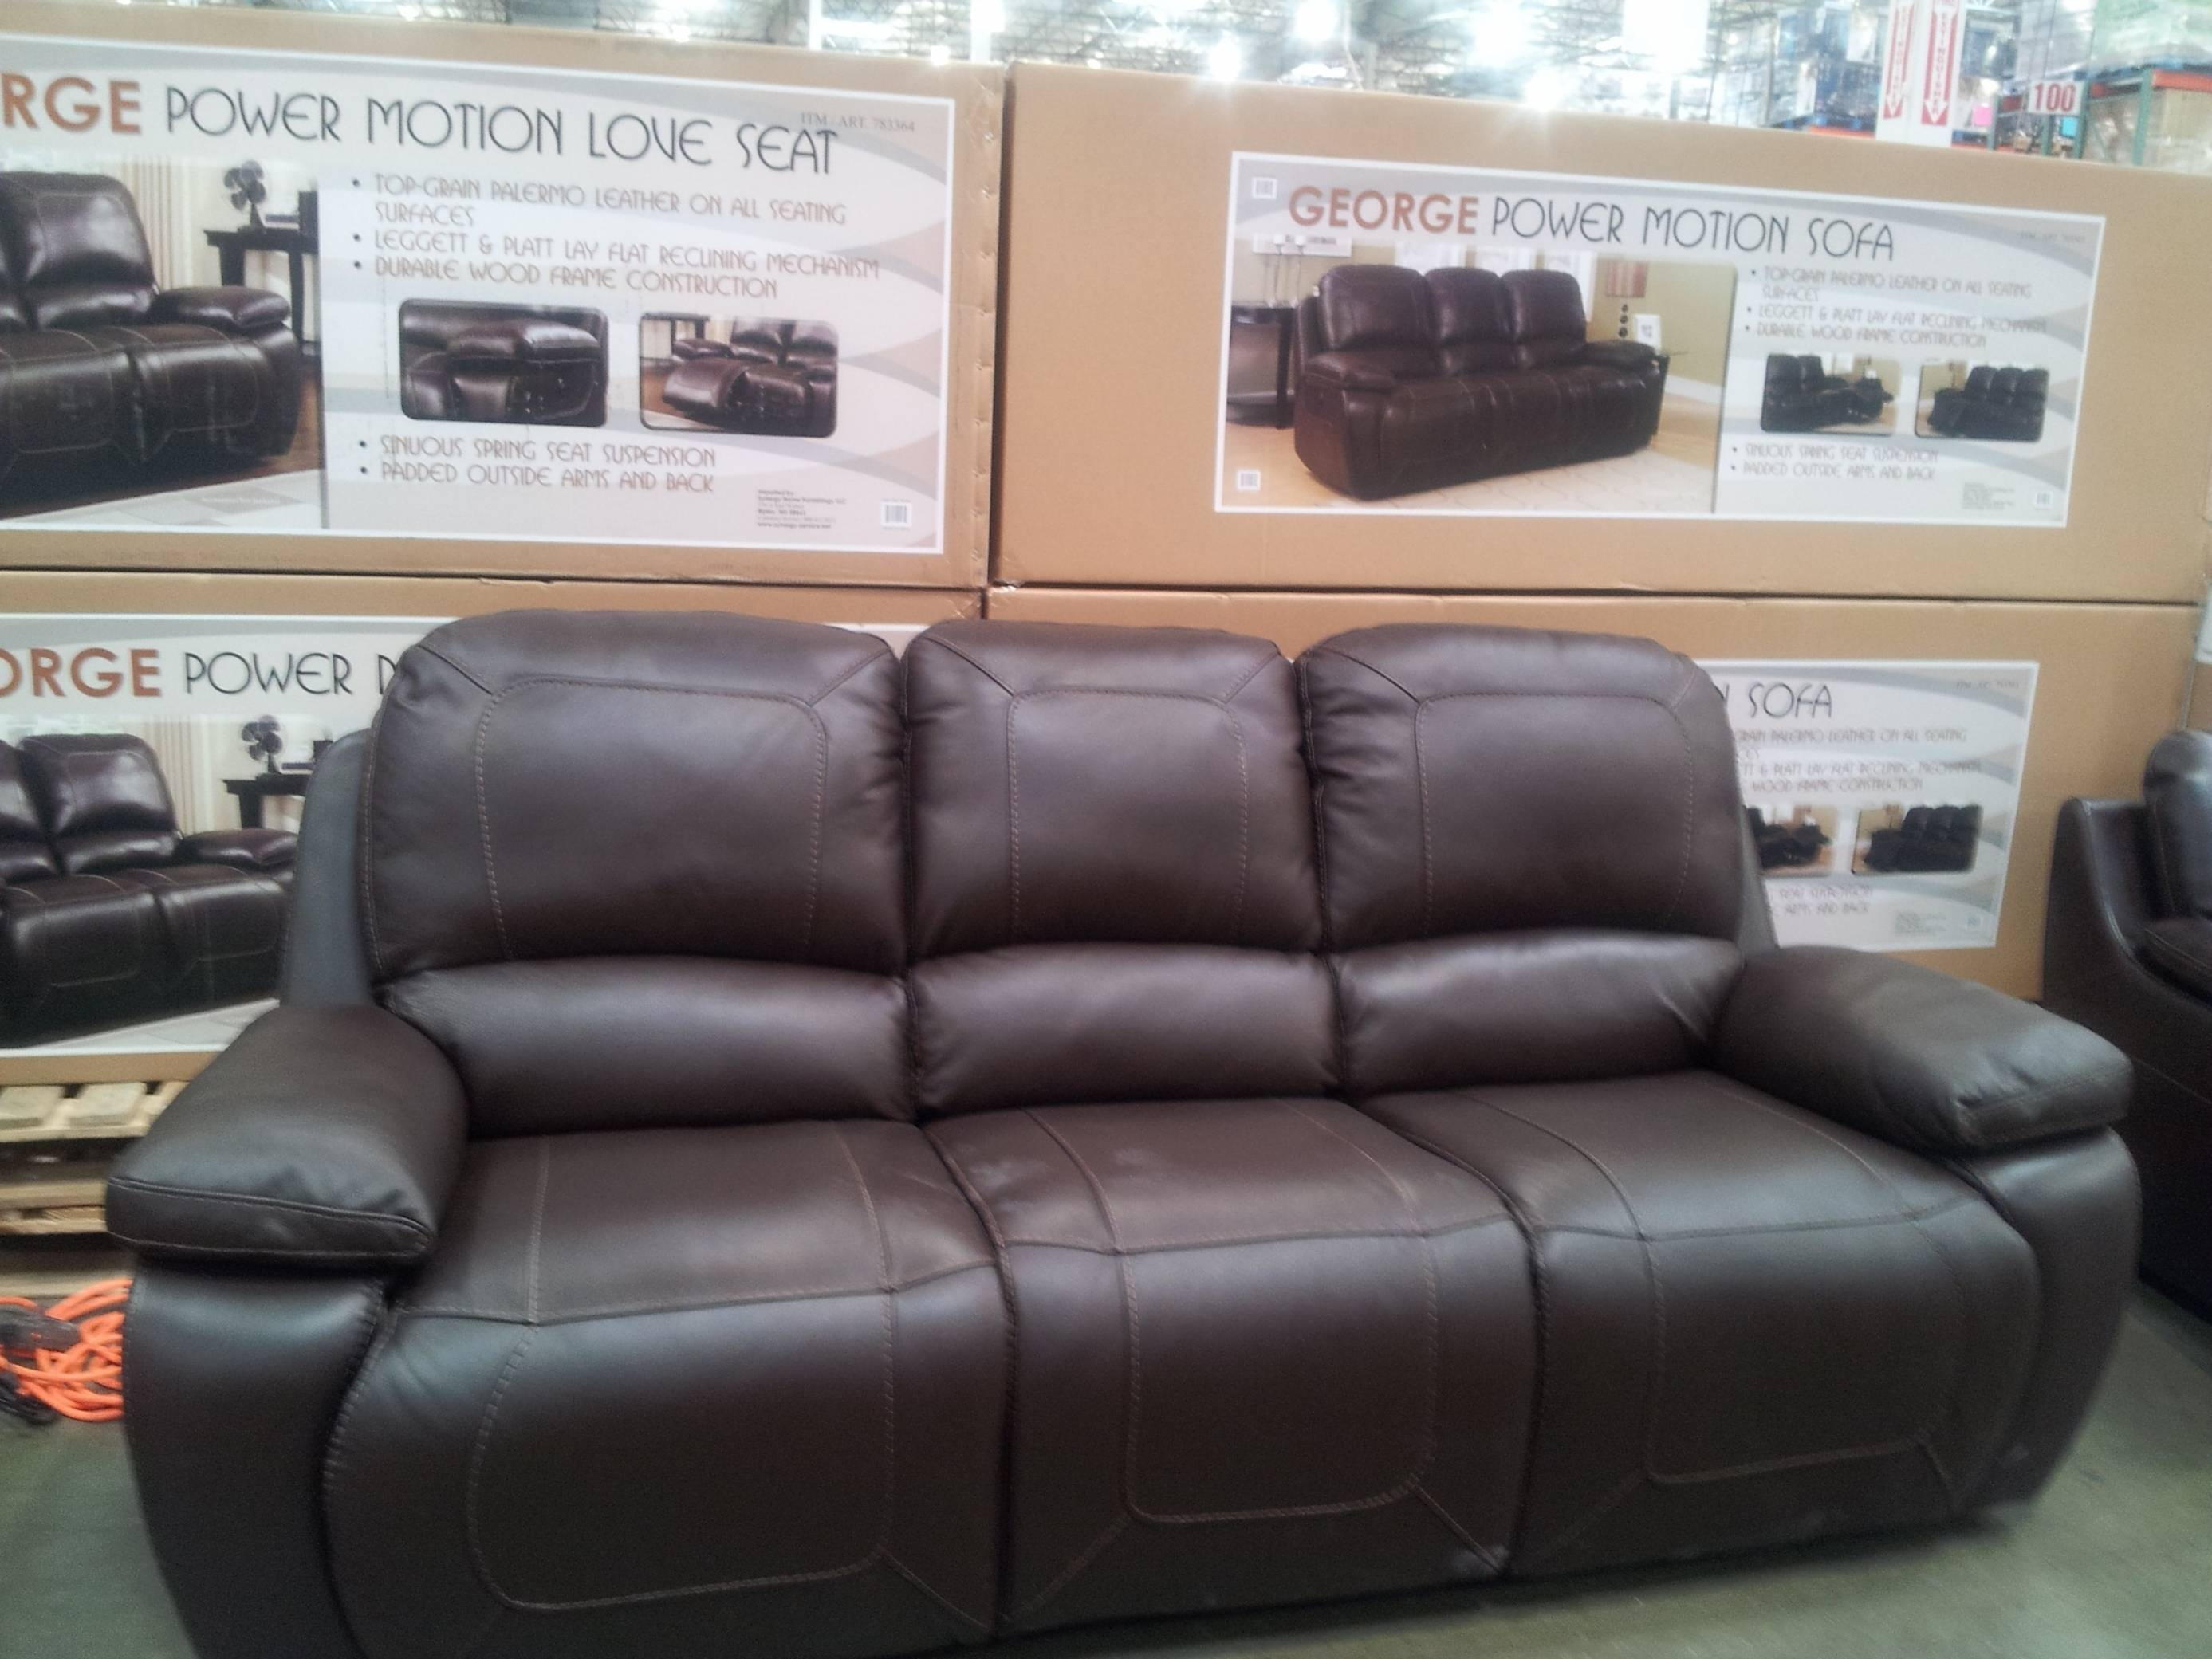 100+ [ Berkline Reclining Sofa Microfiber ] | Recliners Furniture regarding Berkline Recliner Sofas (Image 1 of 15)